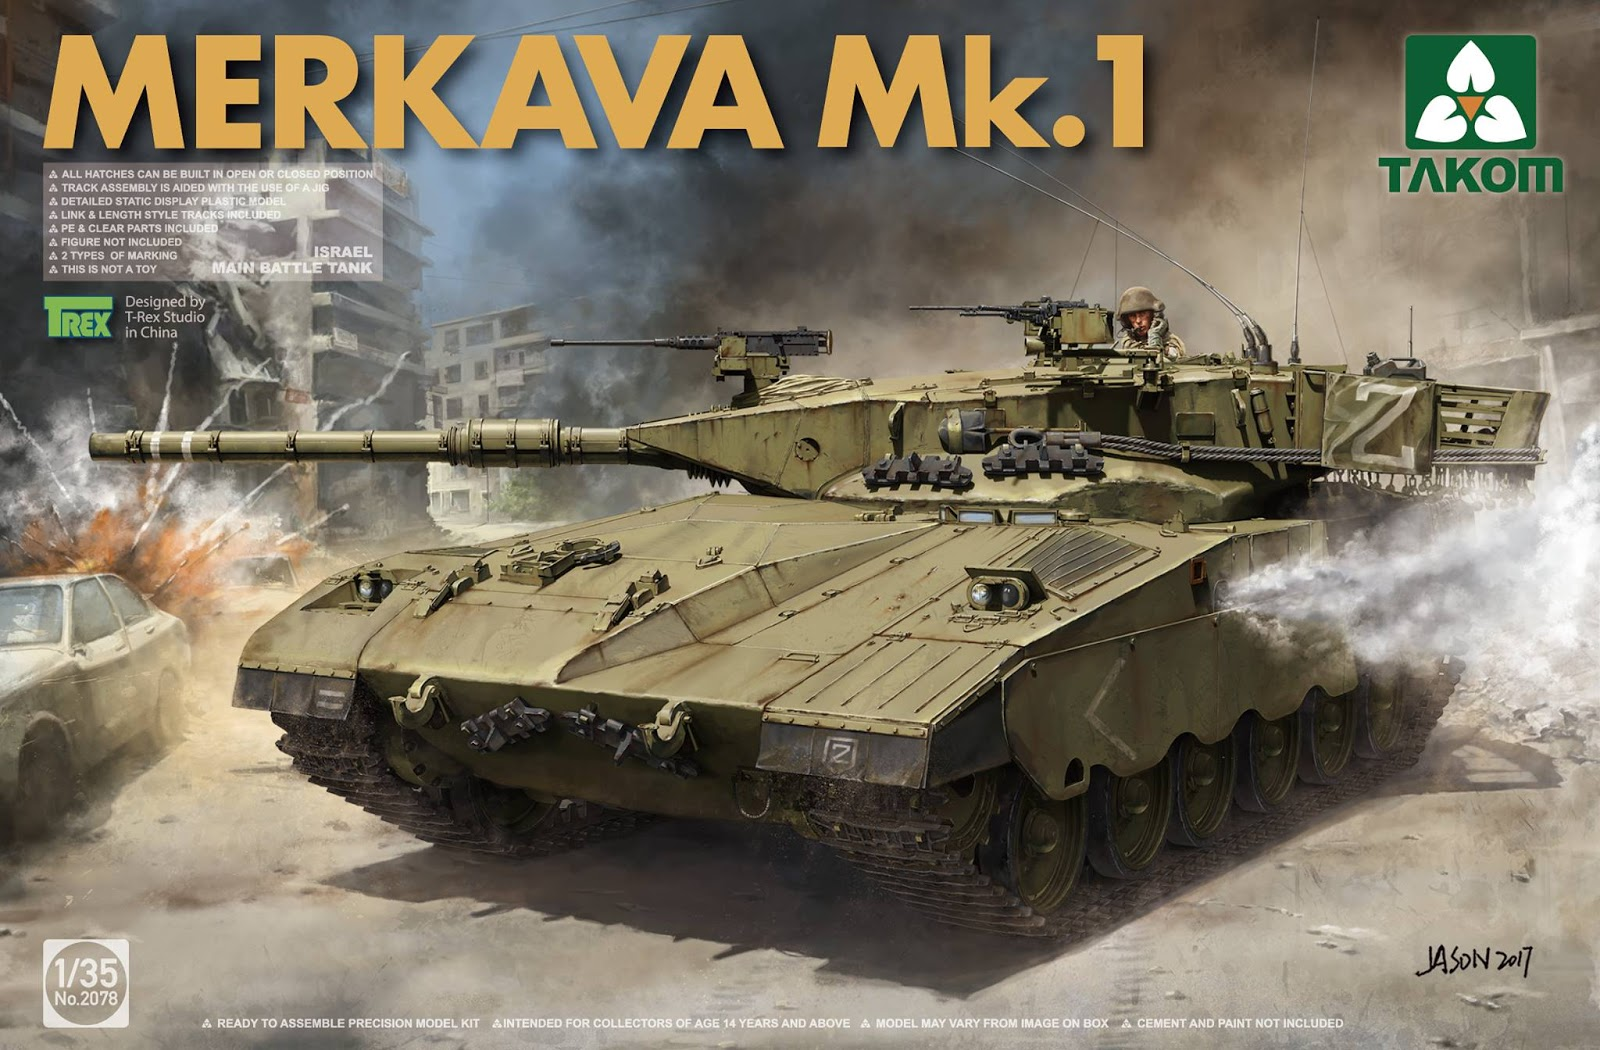 So now we see the start of what we hope is a whole family of merkava in 35th scale from takom we have some limited info on them in our